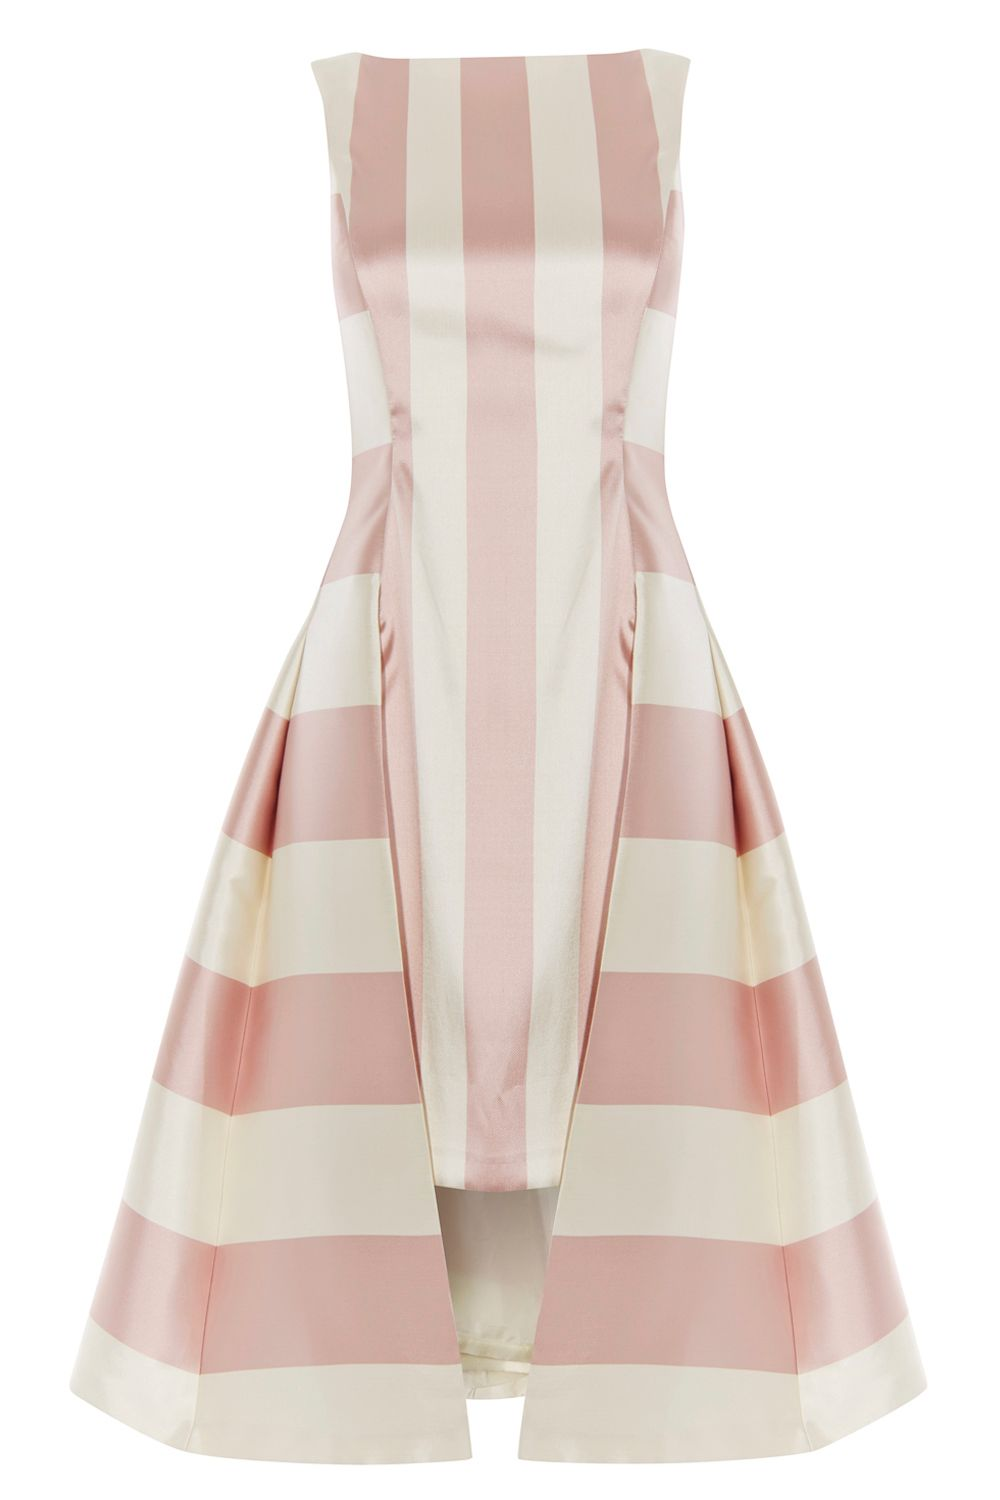 Coast Kady Stripe Dress, Multi-Coloured